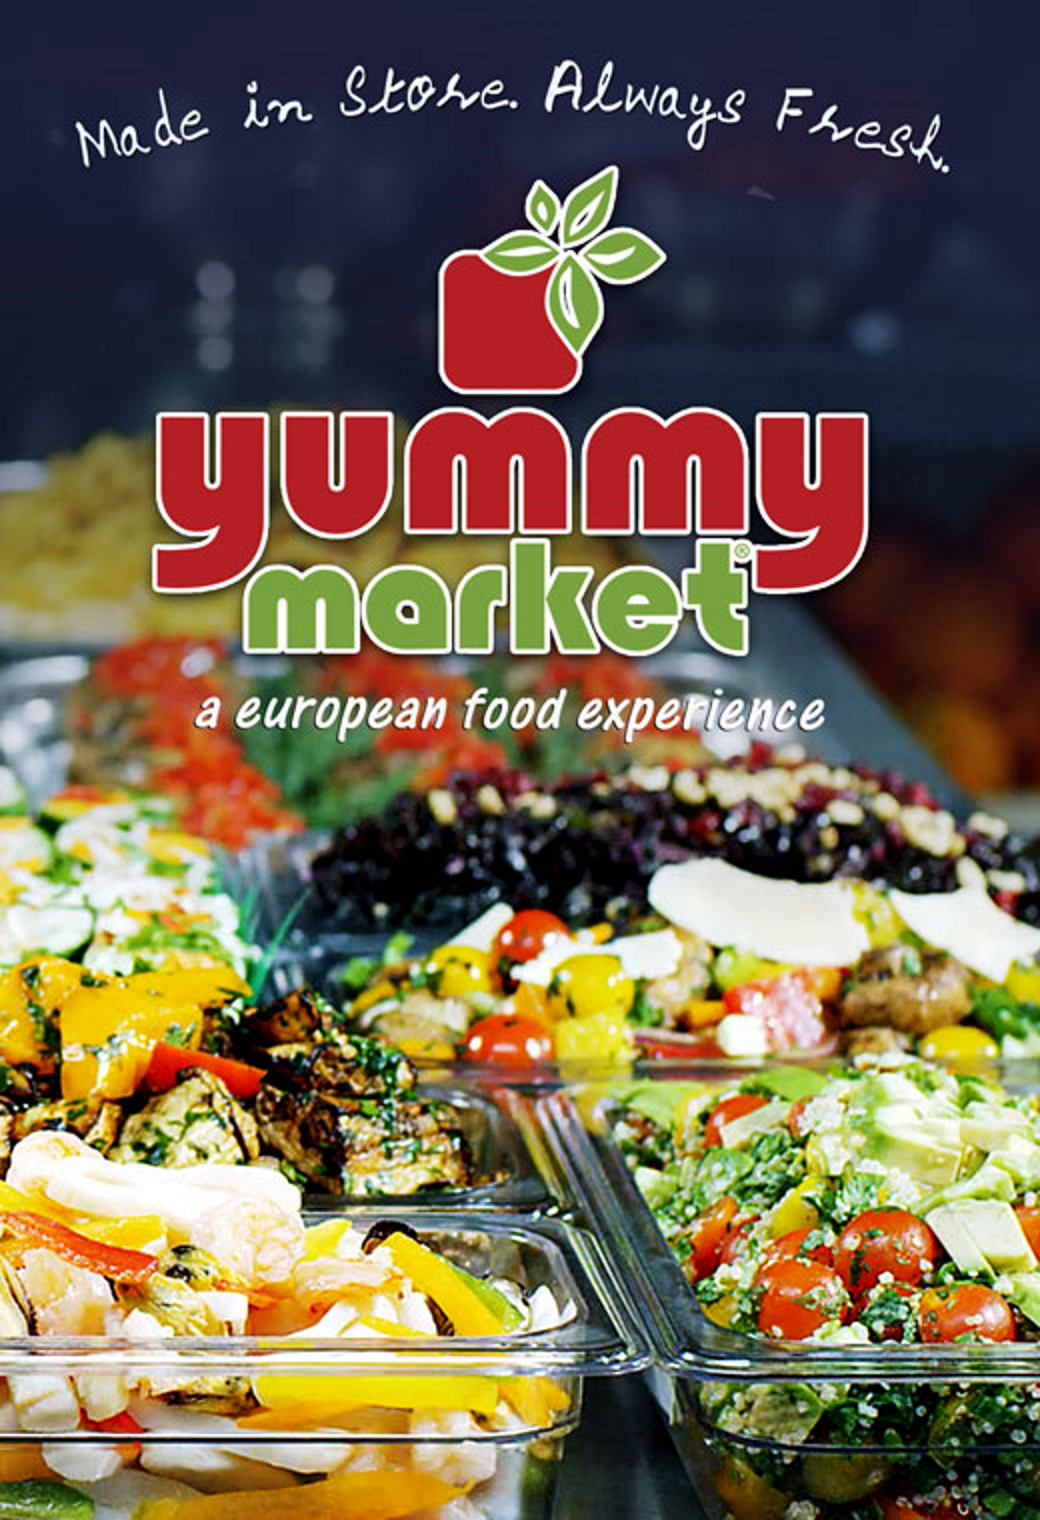 Yummy-Market-Commercial-Poster